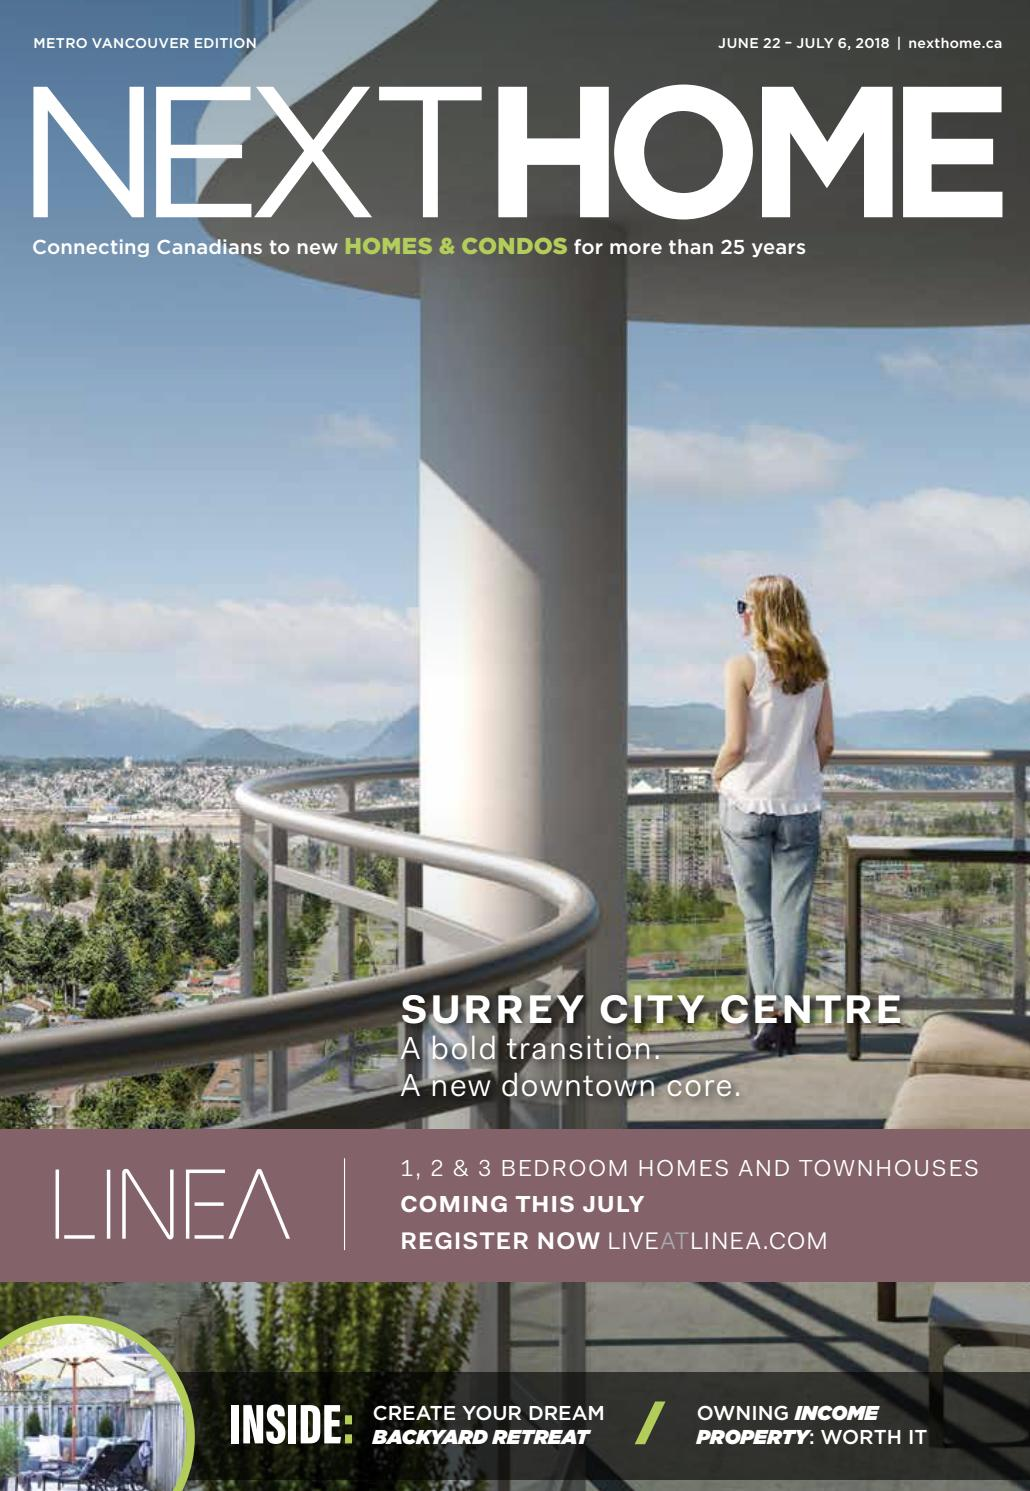 BC New Home and Condo Guide - Jun 22, 2018 by NextHome - issuu